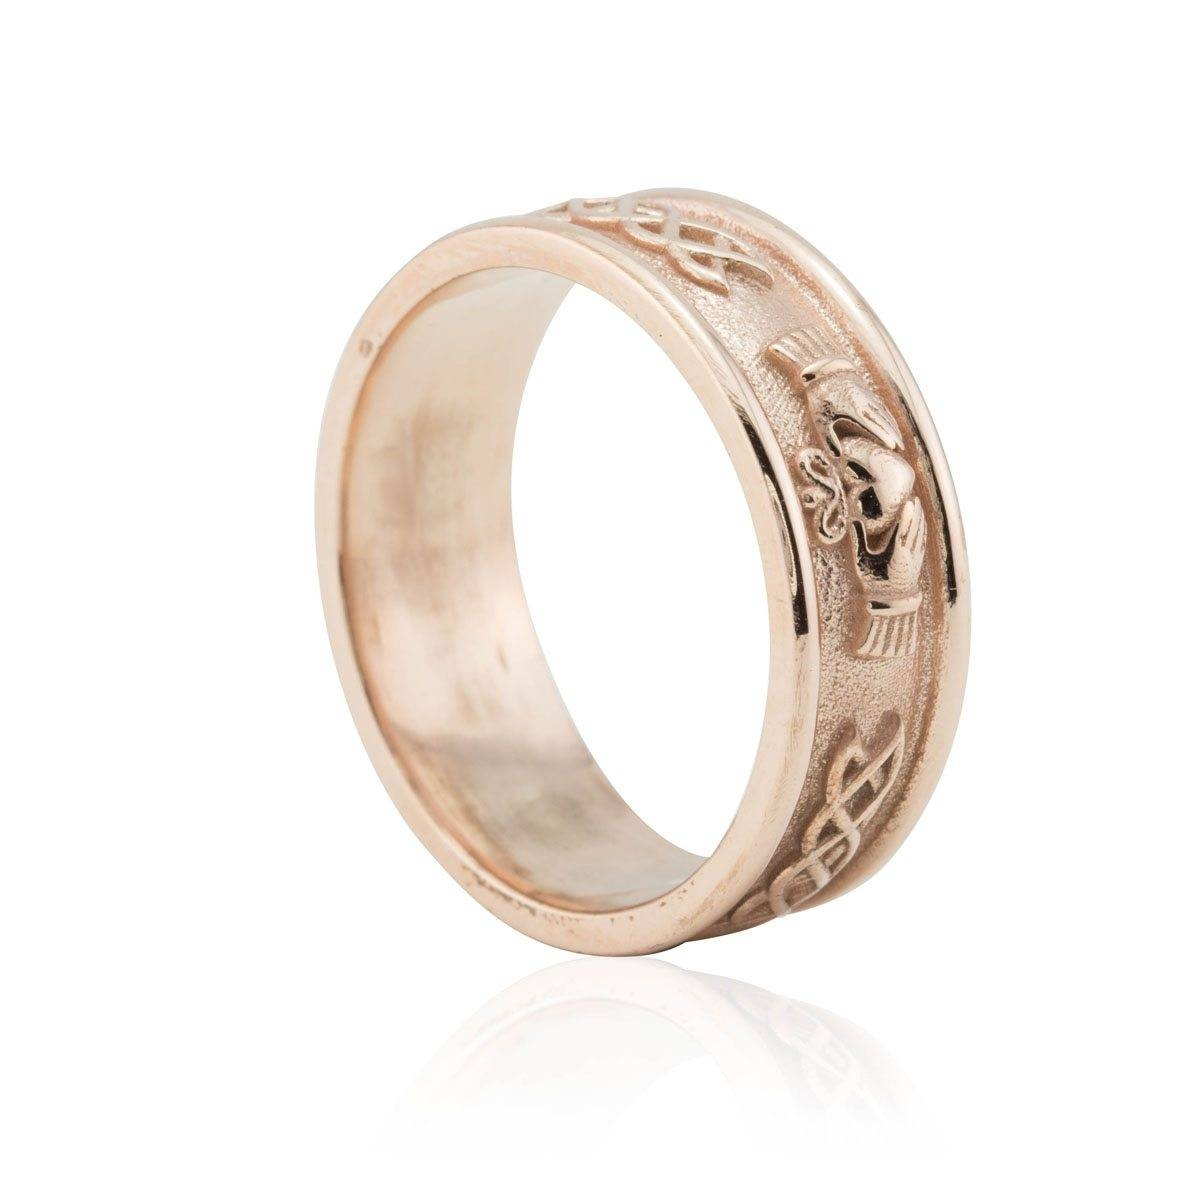 Men's Wedding Band With Irish Claddagh In 14K Rose Gold 8Mm Wide Intended For Claddagh Mens Wedding Bands (View 11 of 15)